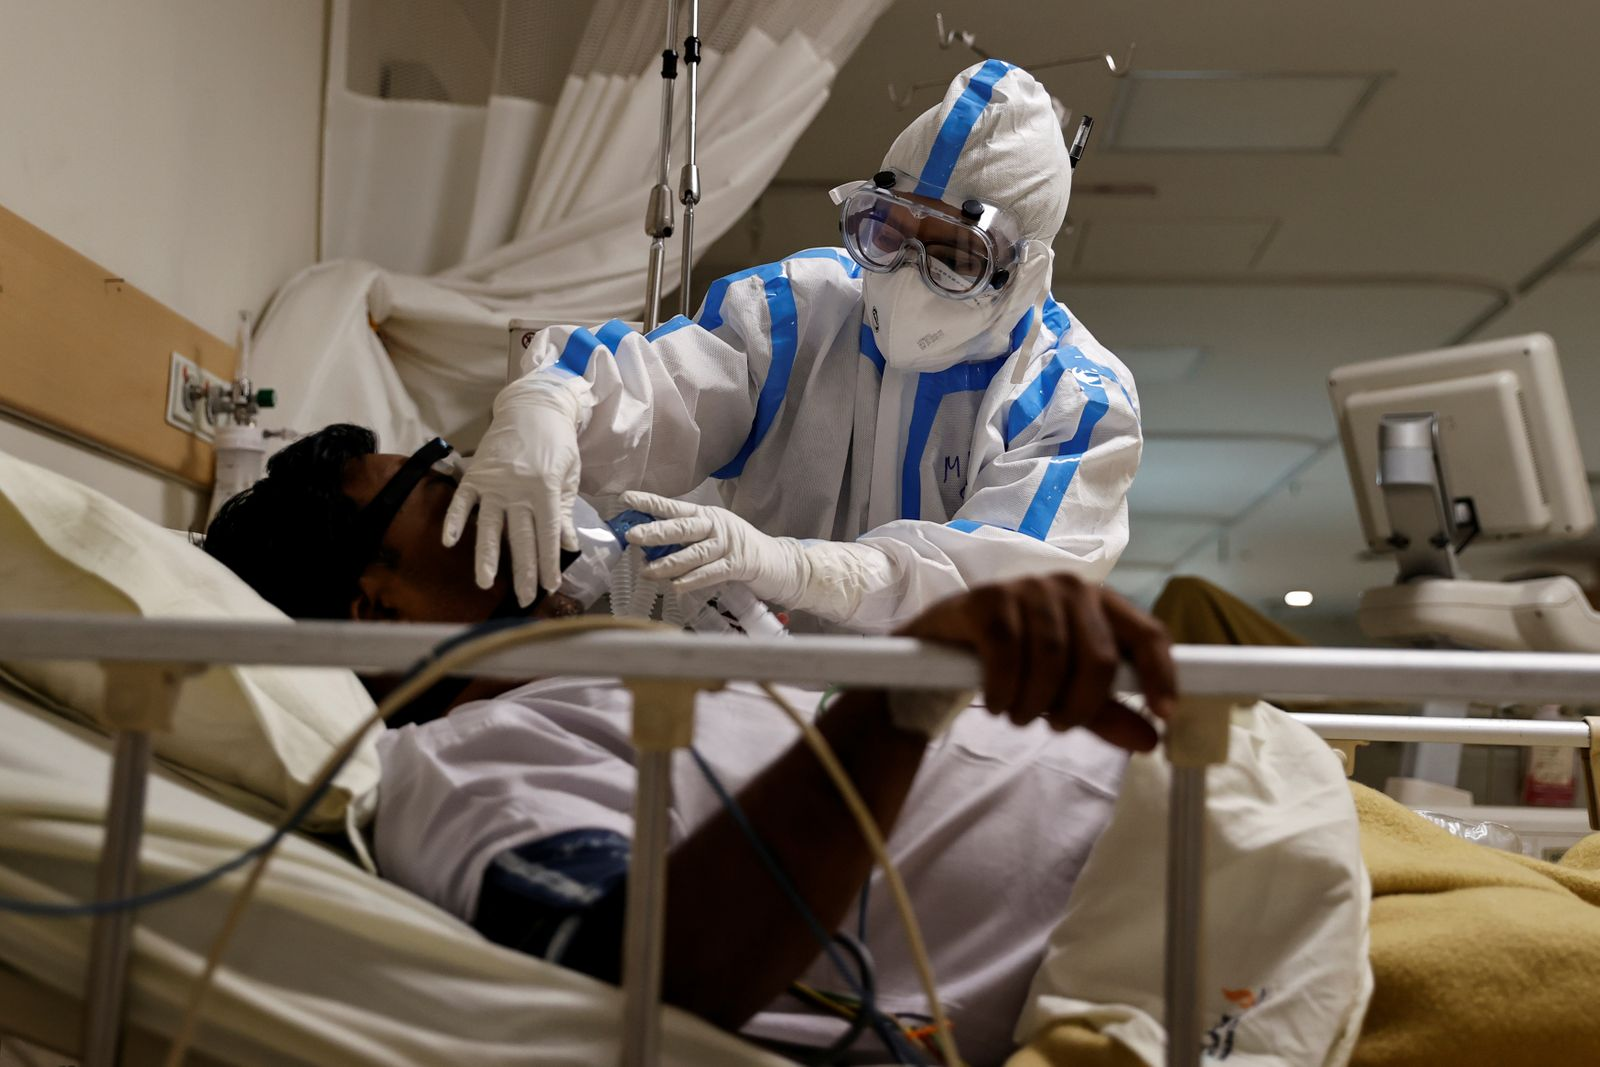 Medical workers treat patients infected with the coronavirus disease (COVID-19) at a hospital in New Delhi